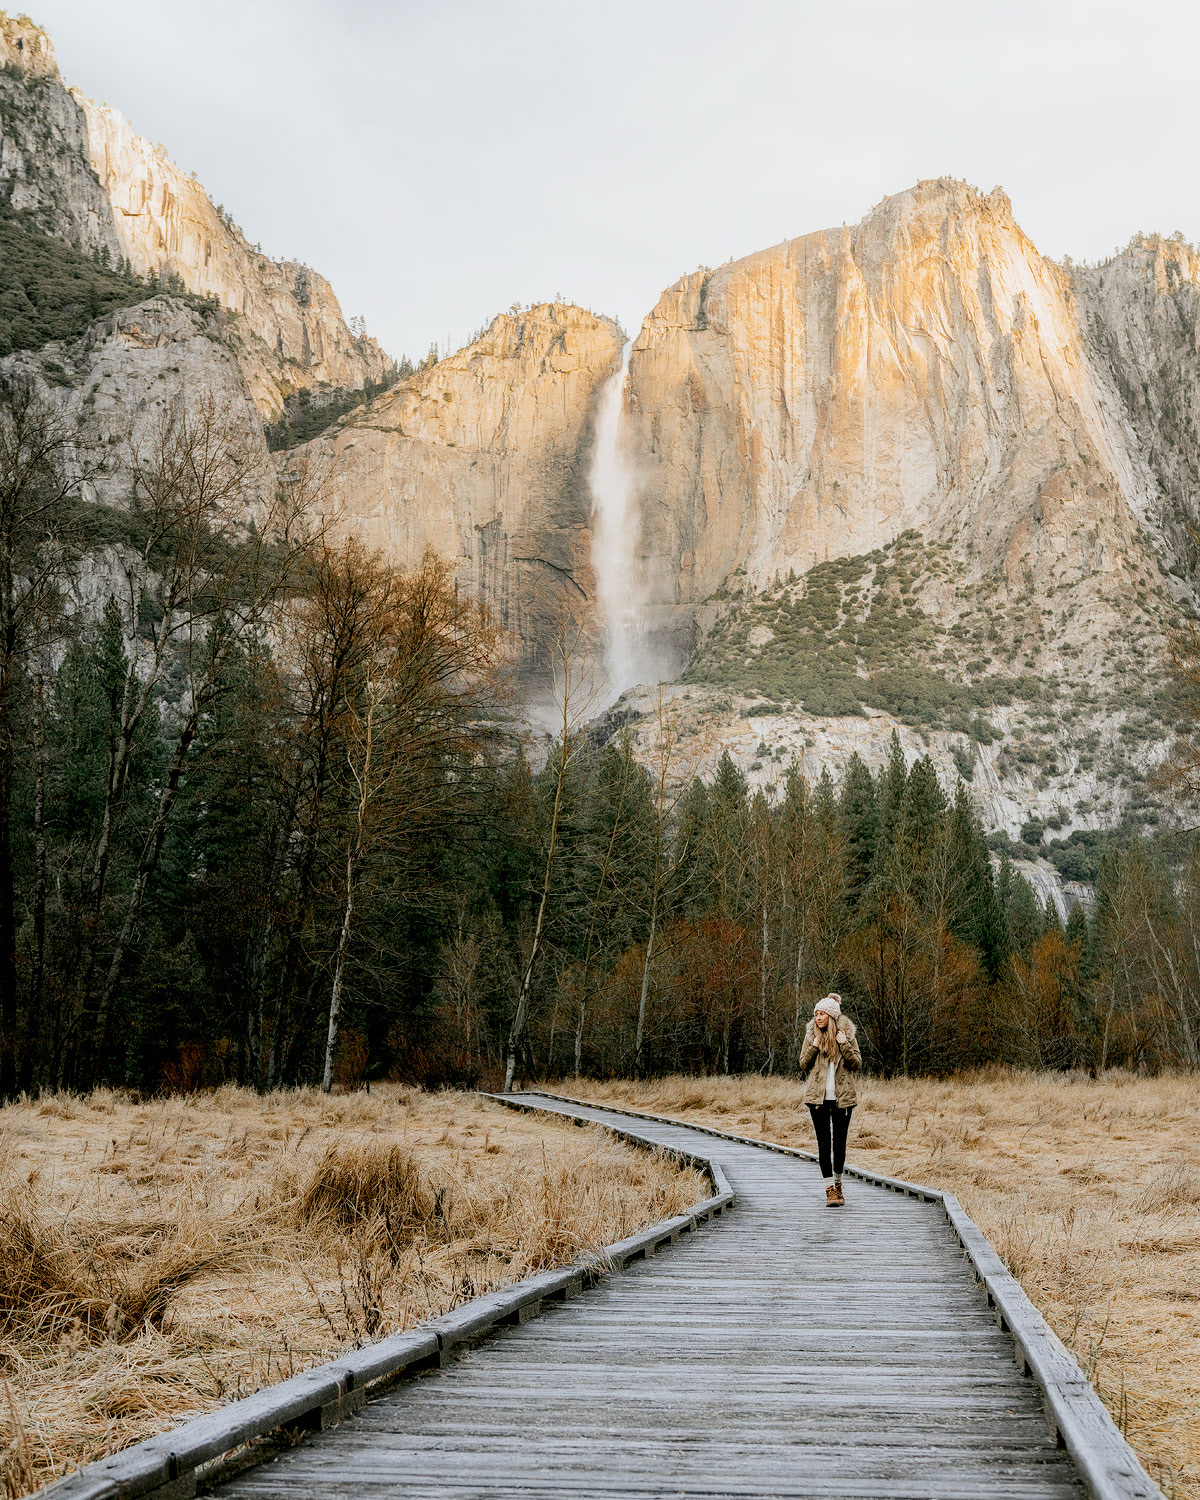 Renee Roaming WINTER CALIFORNIA ROAD TRIP – REDWOODS & YOSEMITE